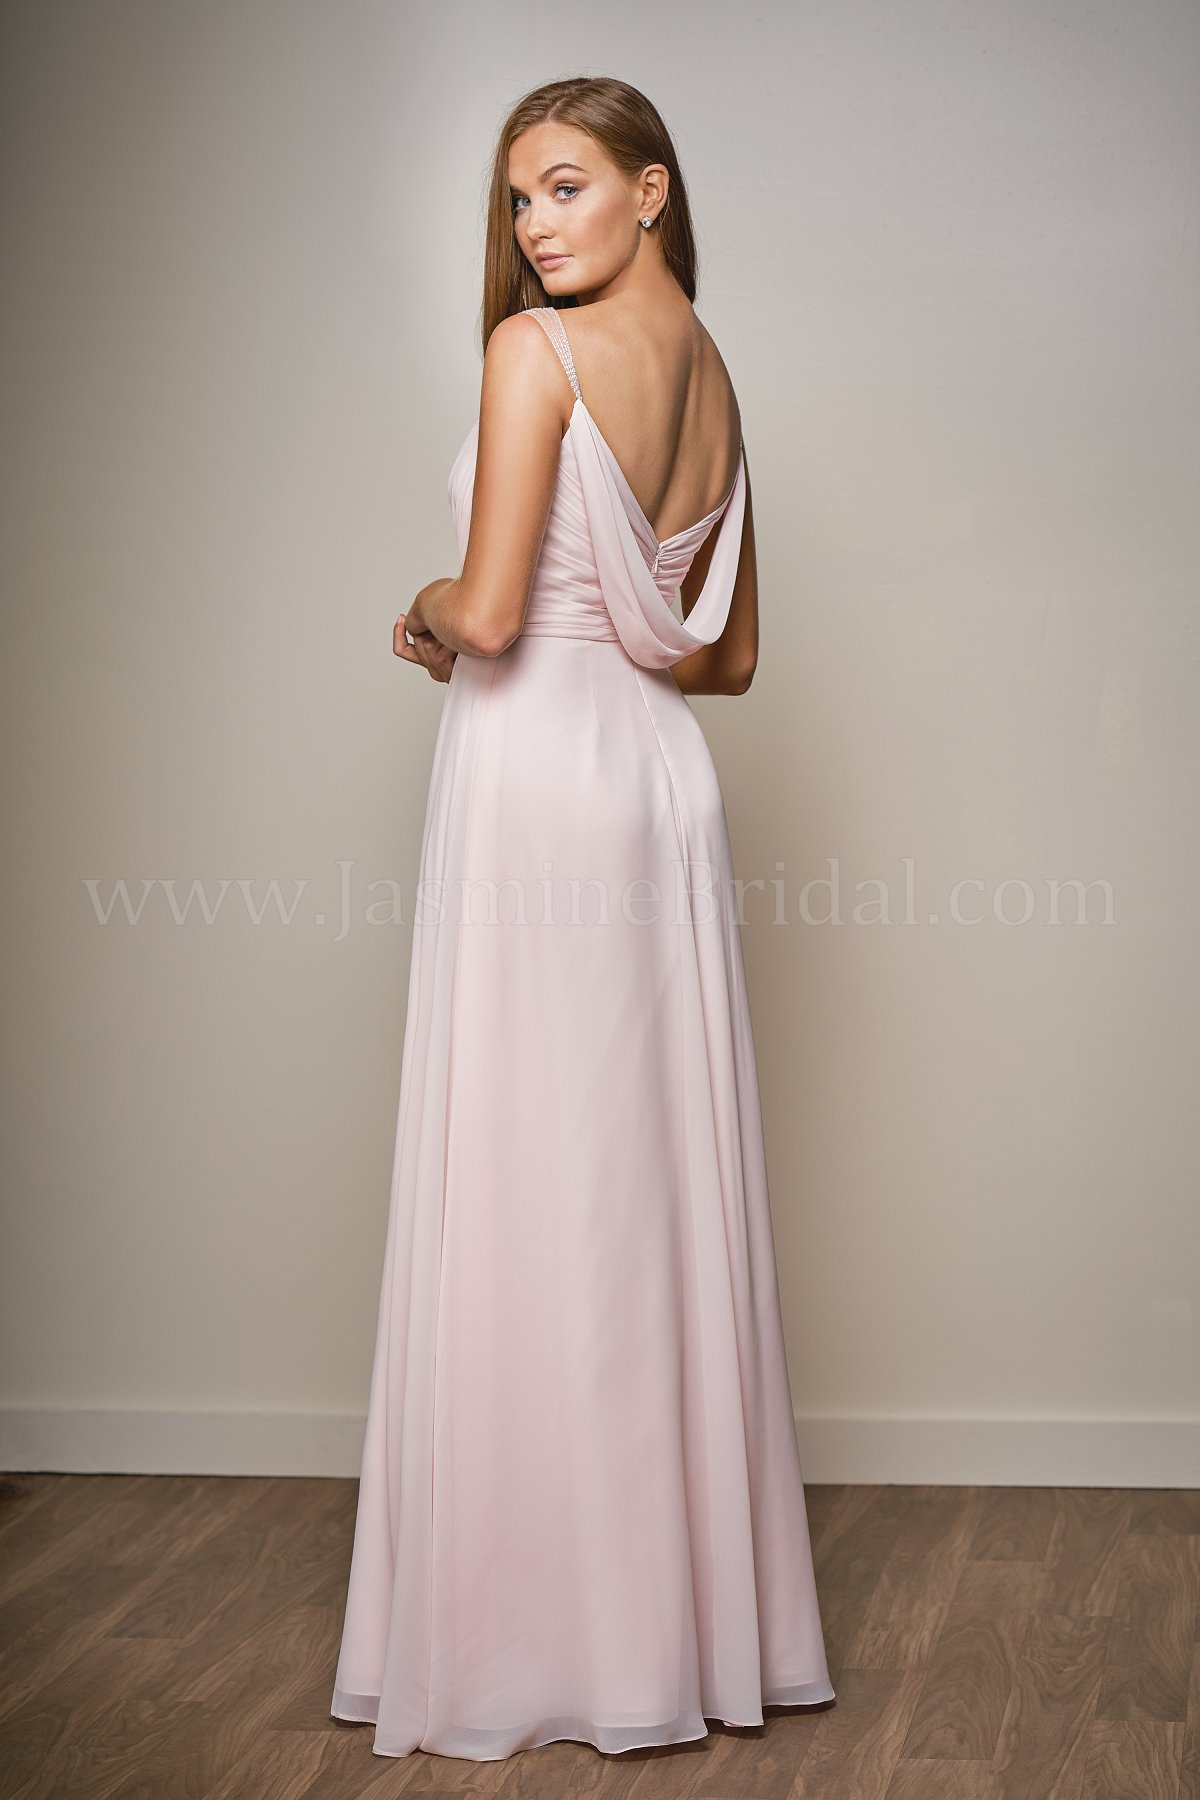 bridesmaid-dresses-L204004-B